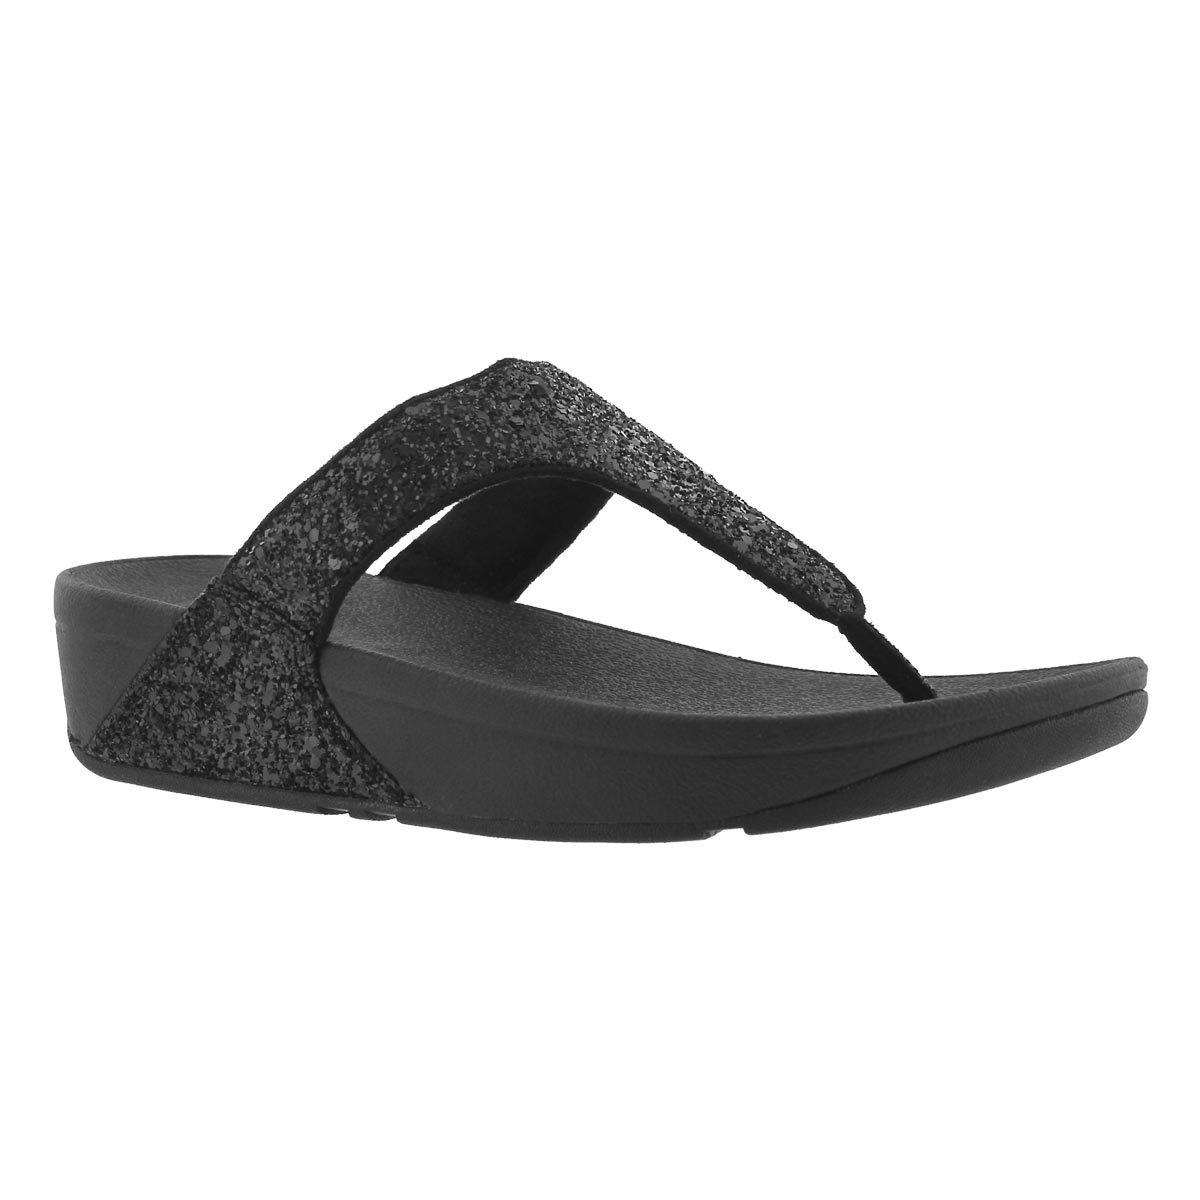 Women's GLITTERBALL TOE-POST blk thong sandals